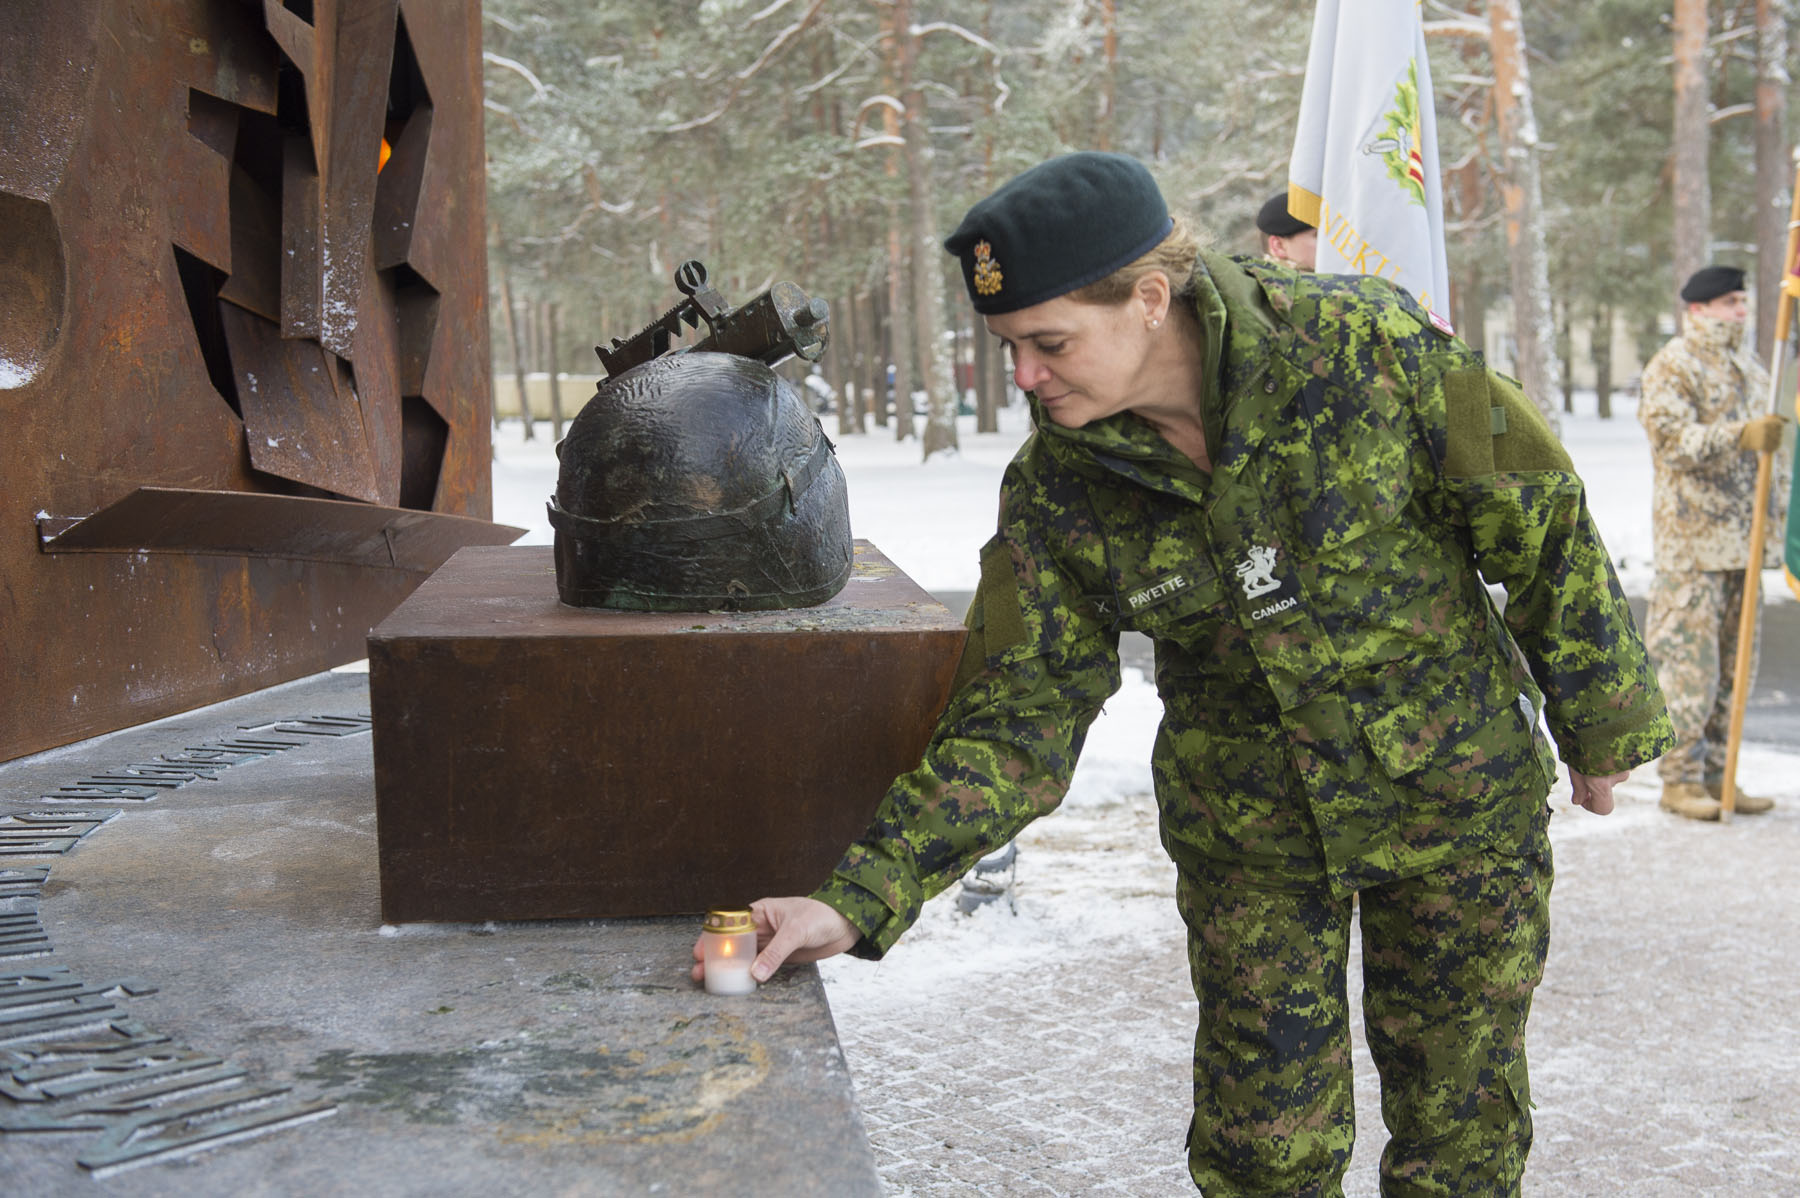 At Camp Adaži, Her Excellency lit a candel in memory of Latvian soldiers who lost their lives defending their country.